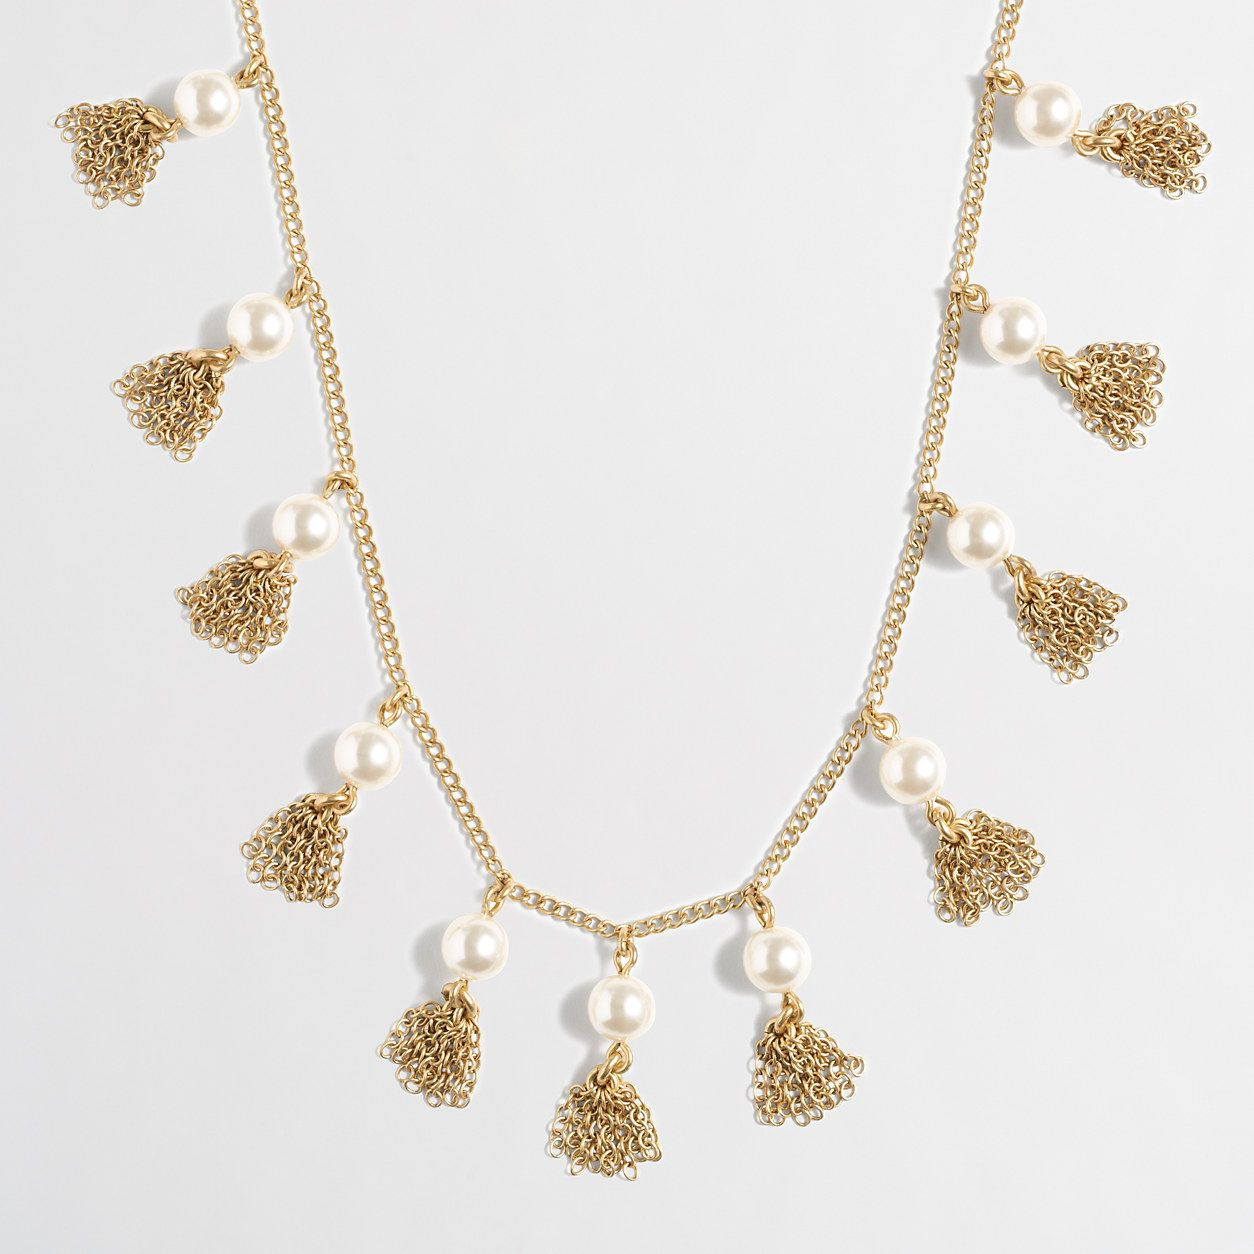 2cff3706f76e44 Factory pearl and chain tassel necklace : Jewelry   J.Crew Factory